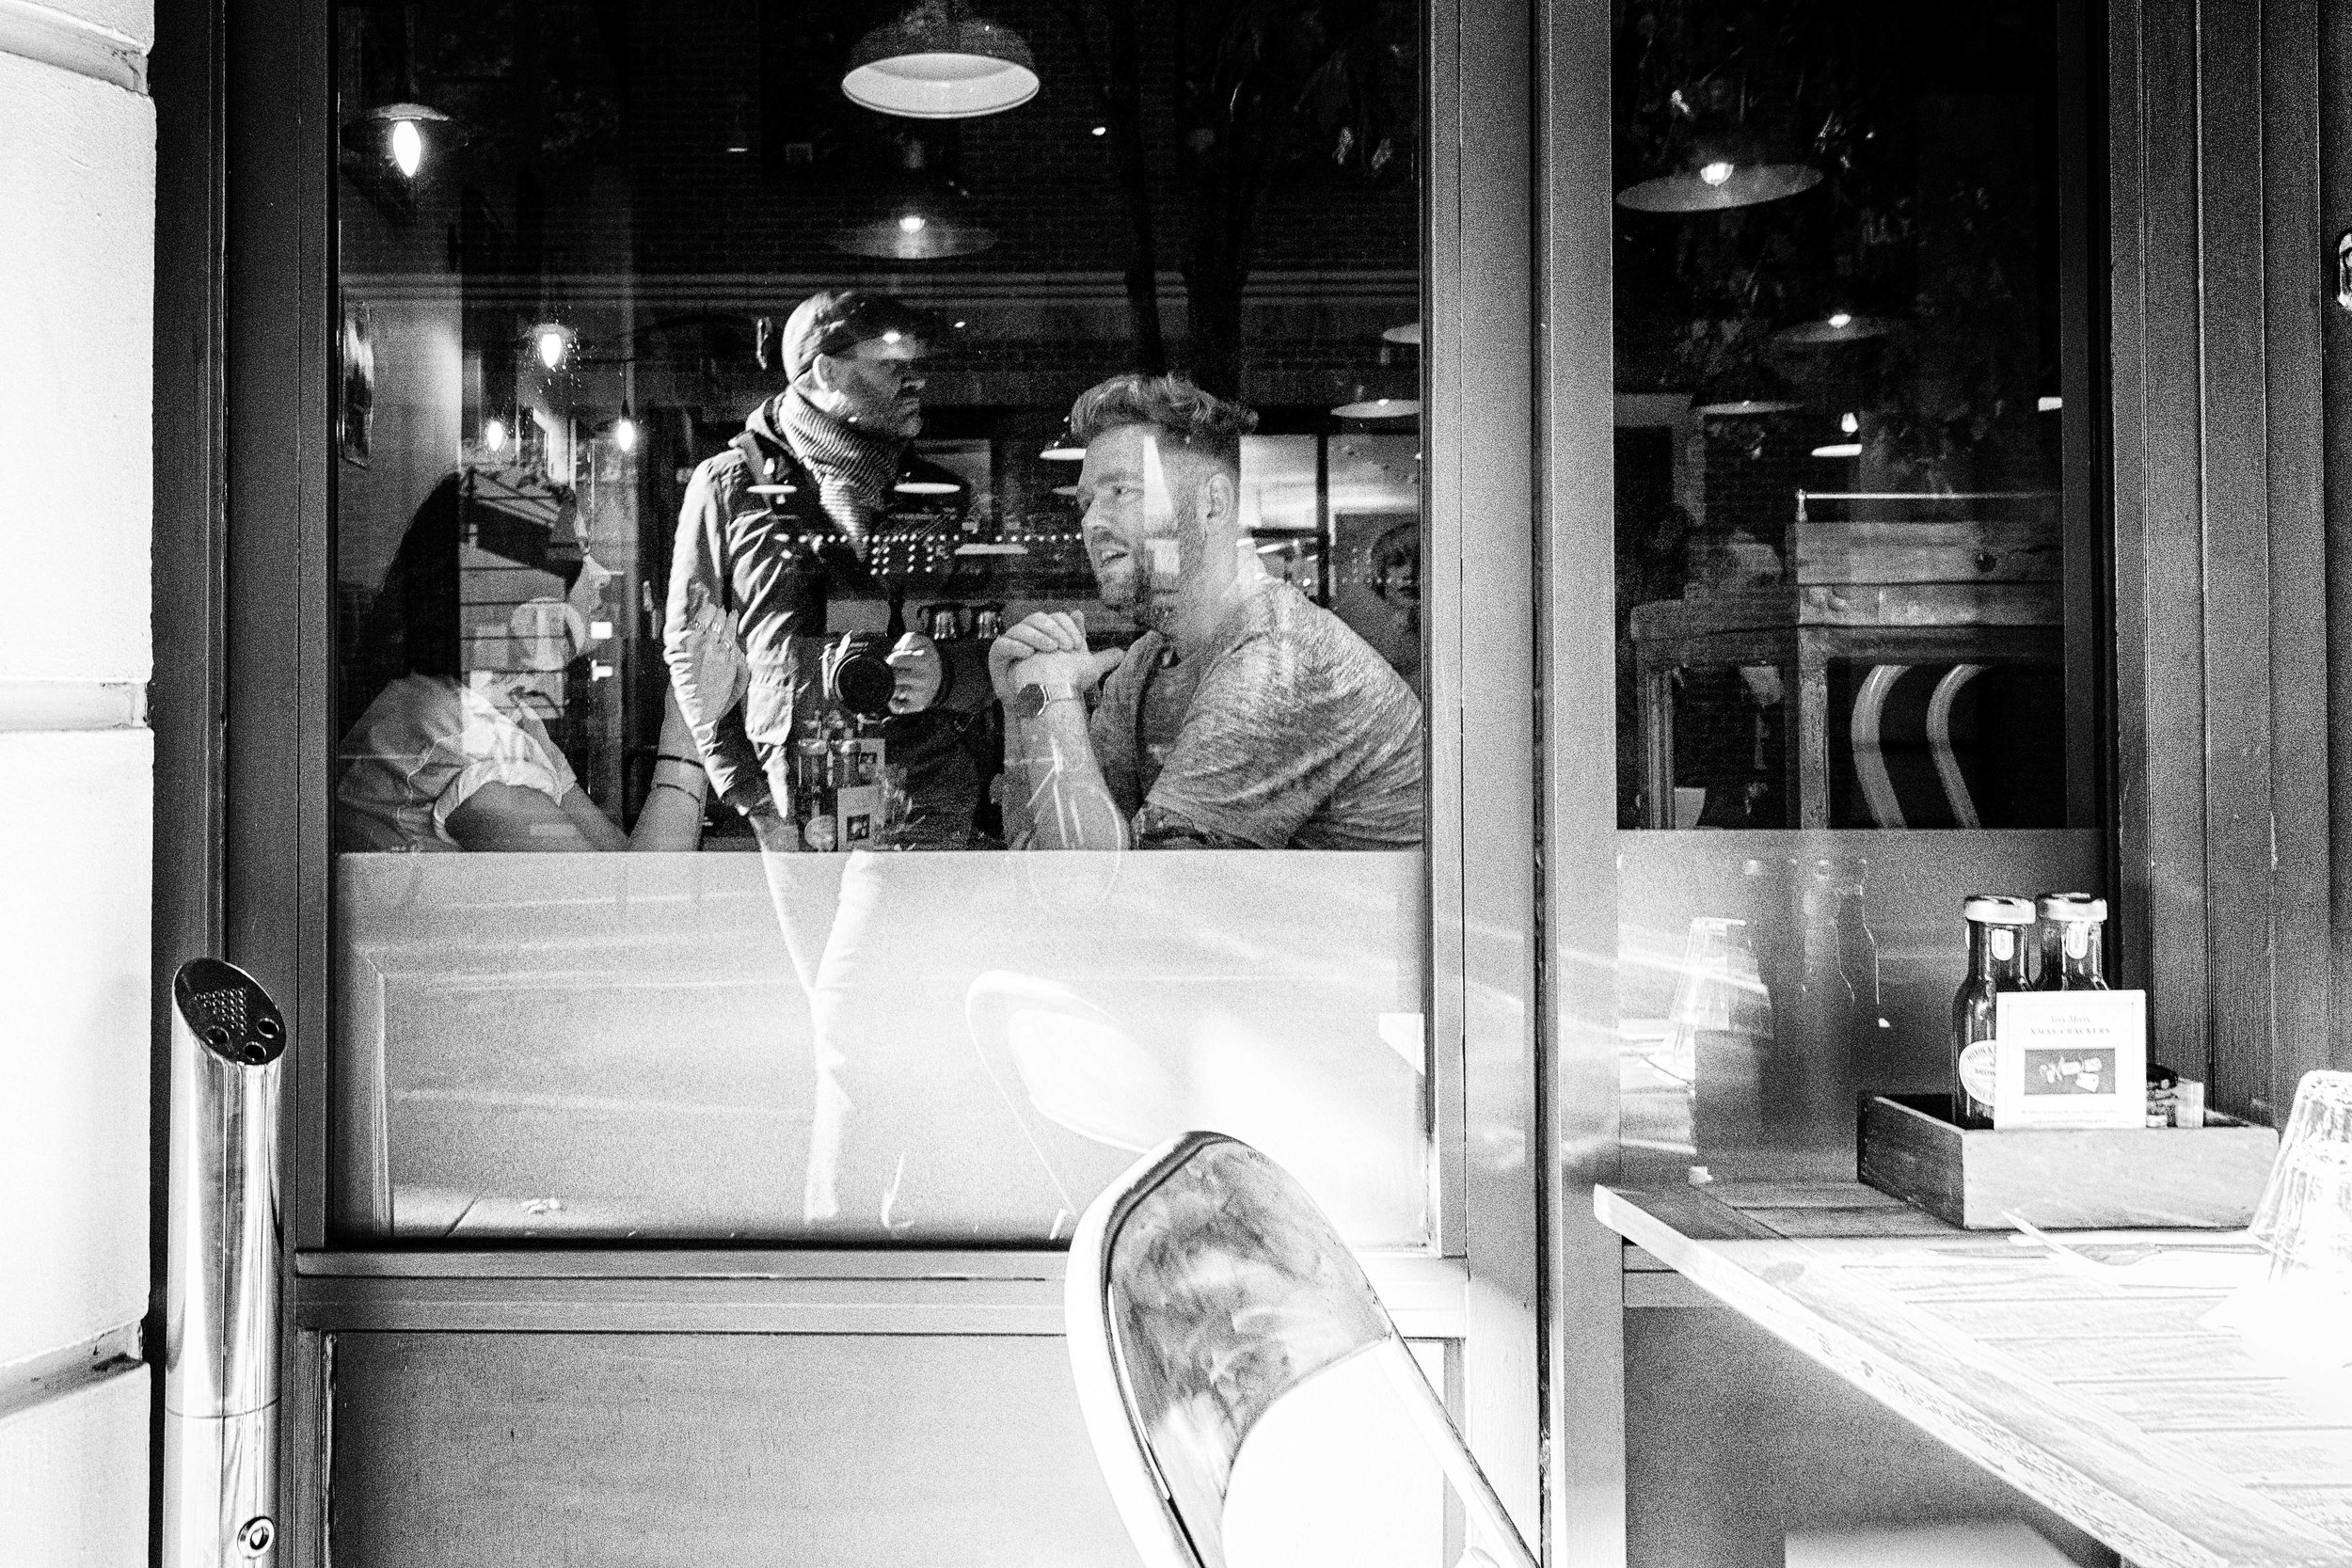 Coffee with the street photographer. London November 2016